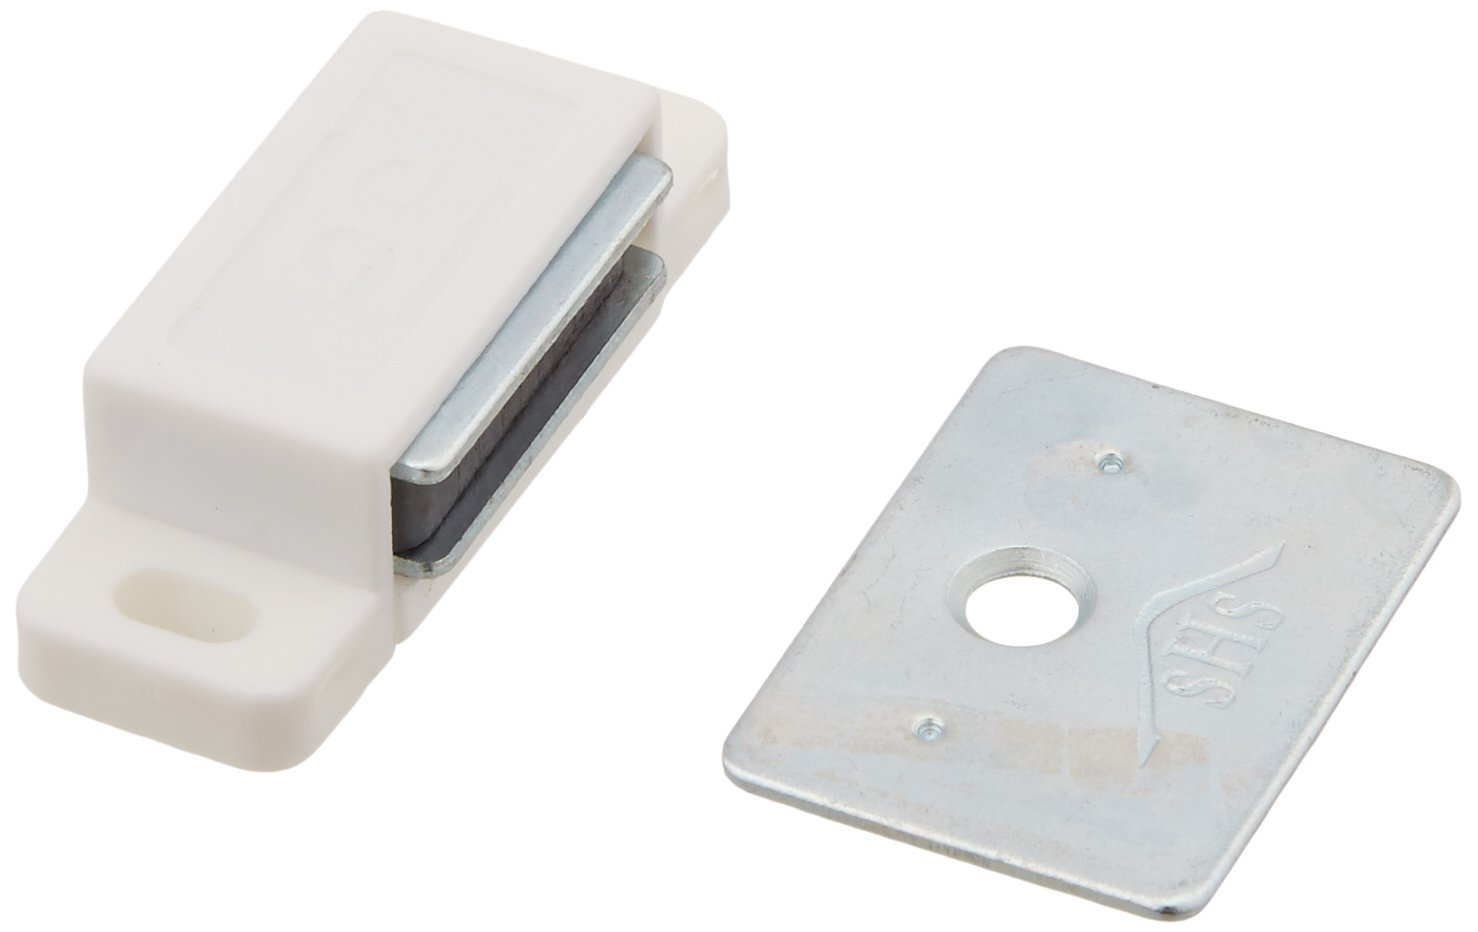 Amazon.com: Shutter/cabinet Magnets - White - 13 Lb. Pull Force ...